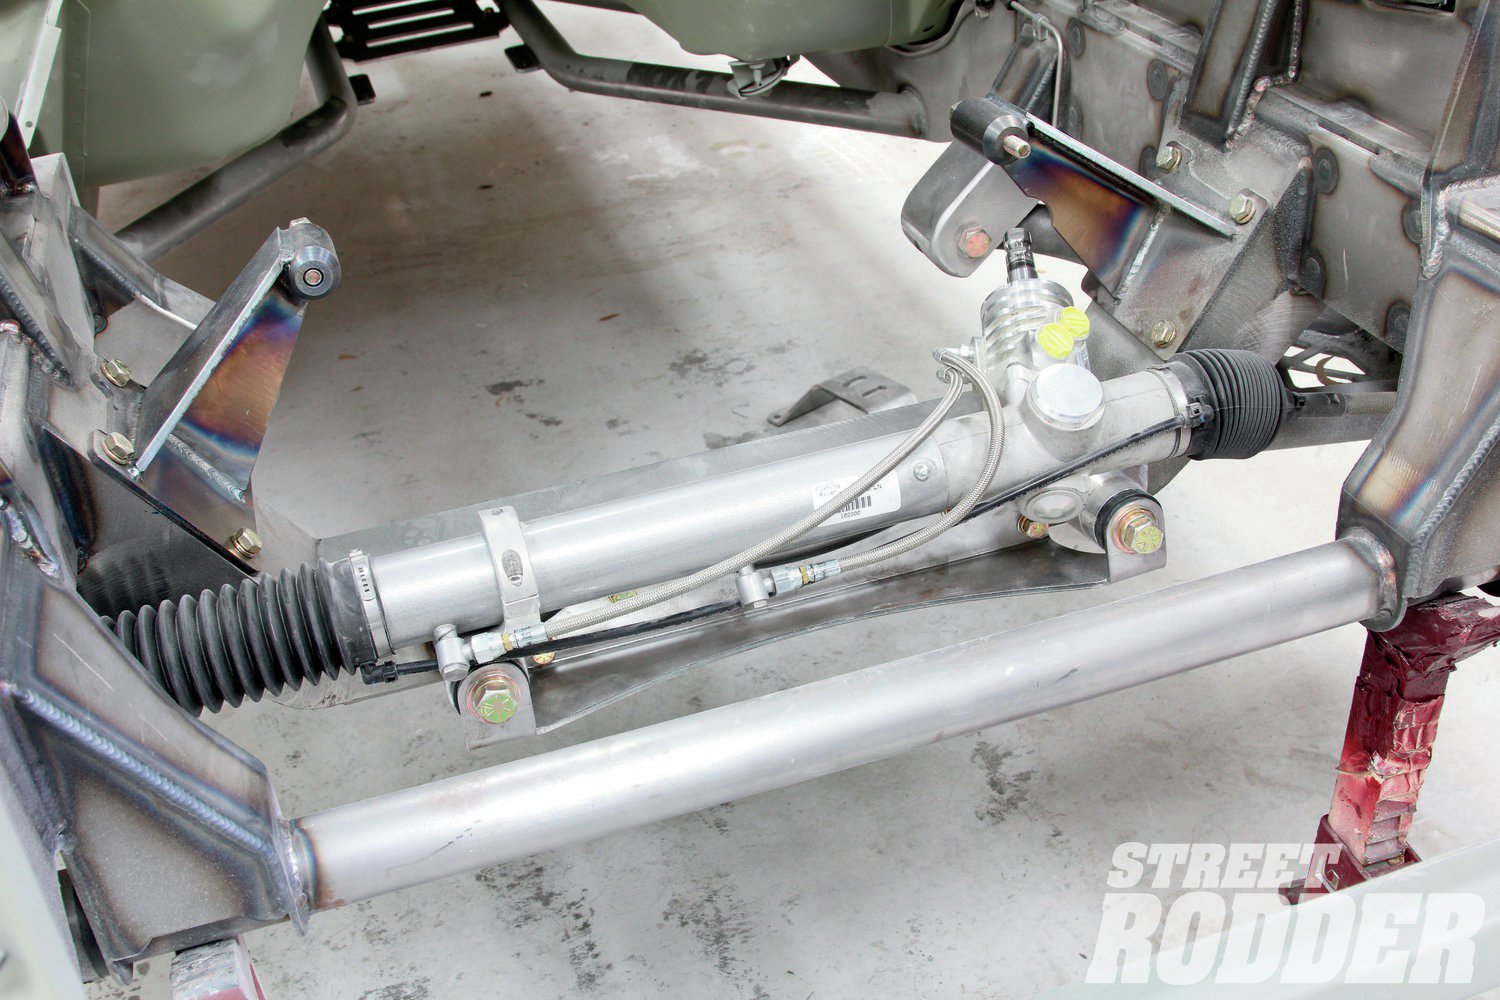 13. We used a Billet power steering rack from Flaming River. Made from all-new components, including a new valve and piston, these racks provide over 6 inches of travel.